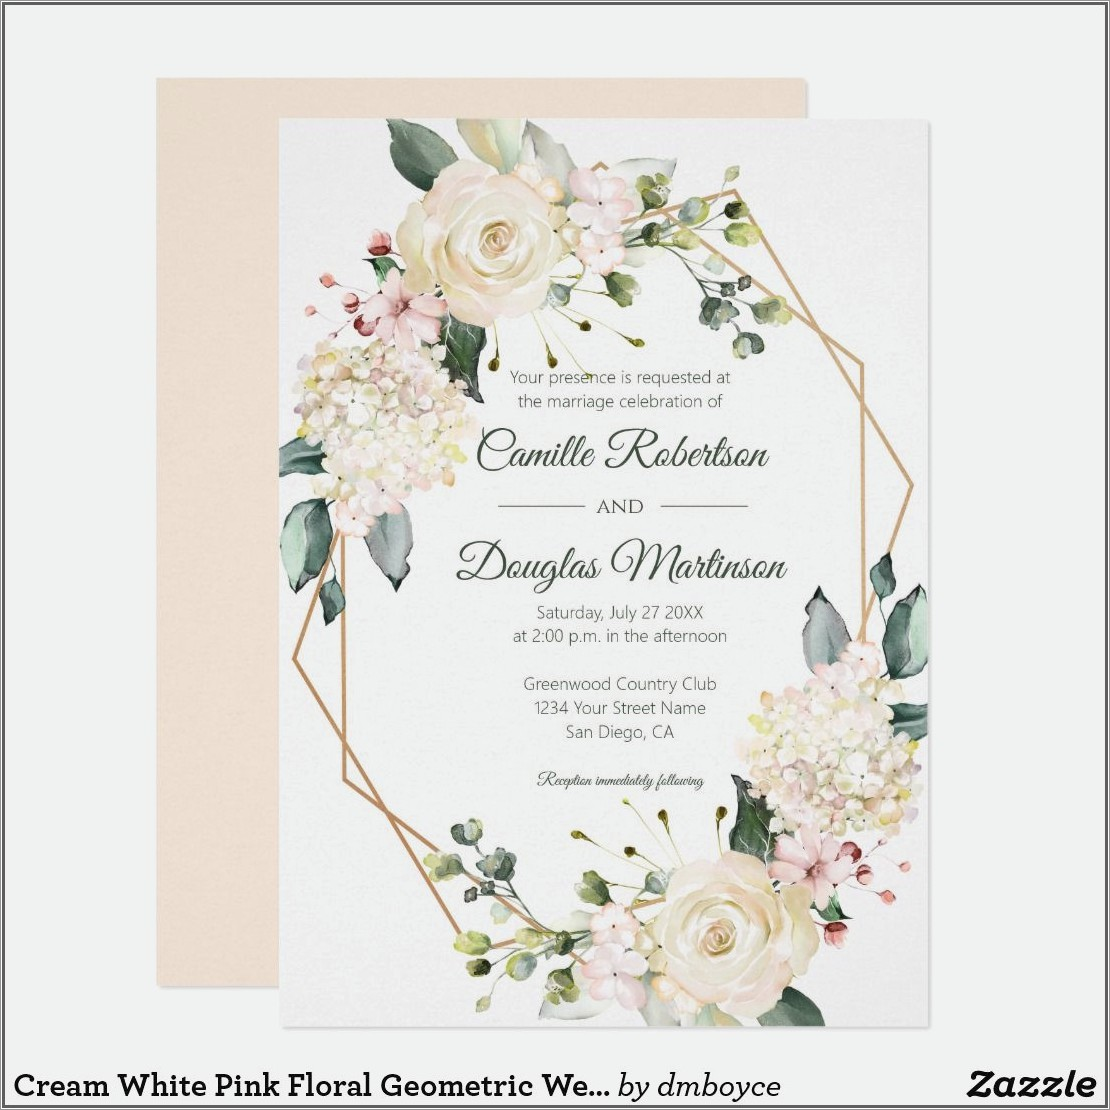 Floral Images For Invitations